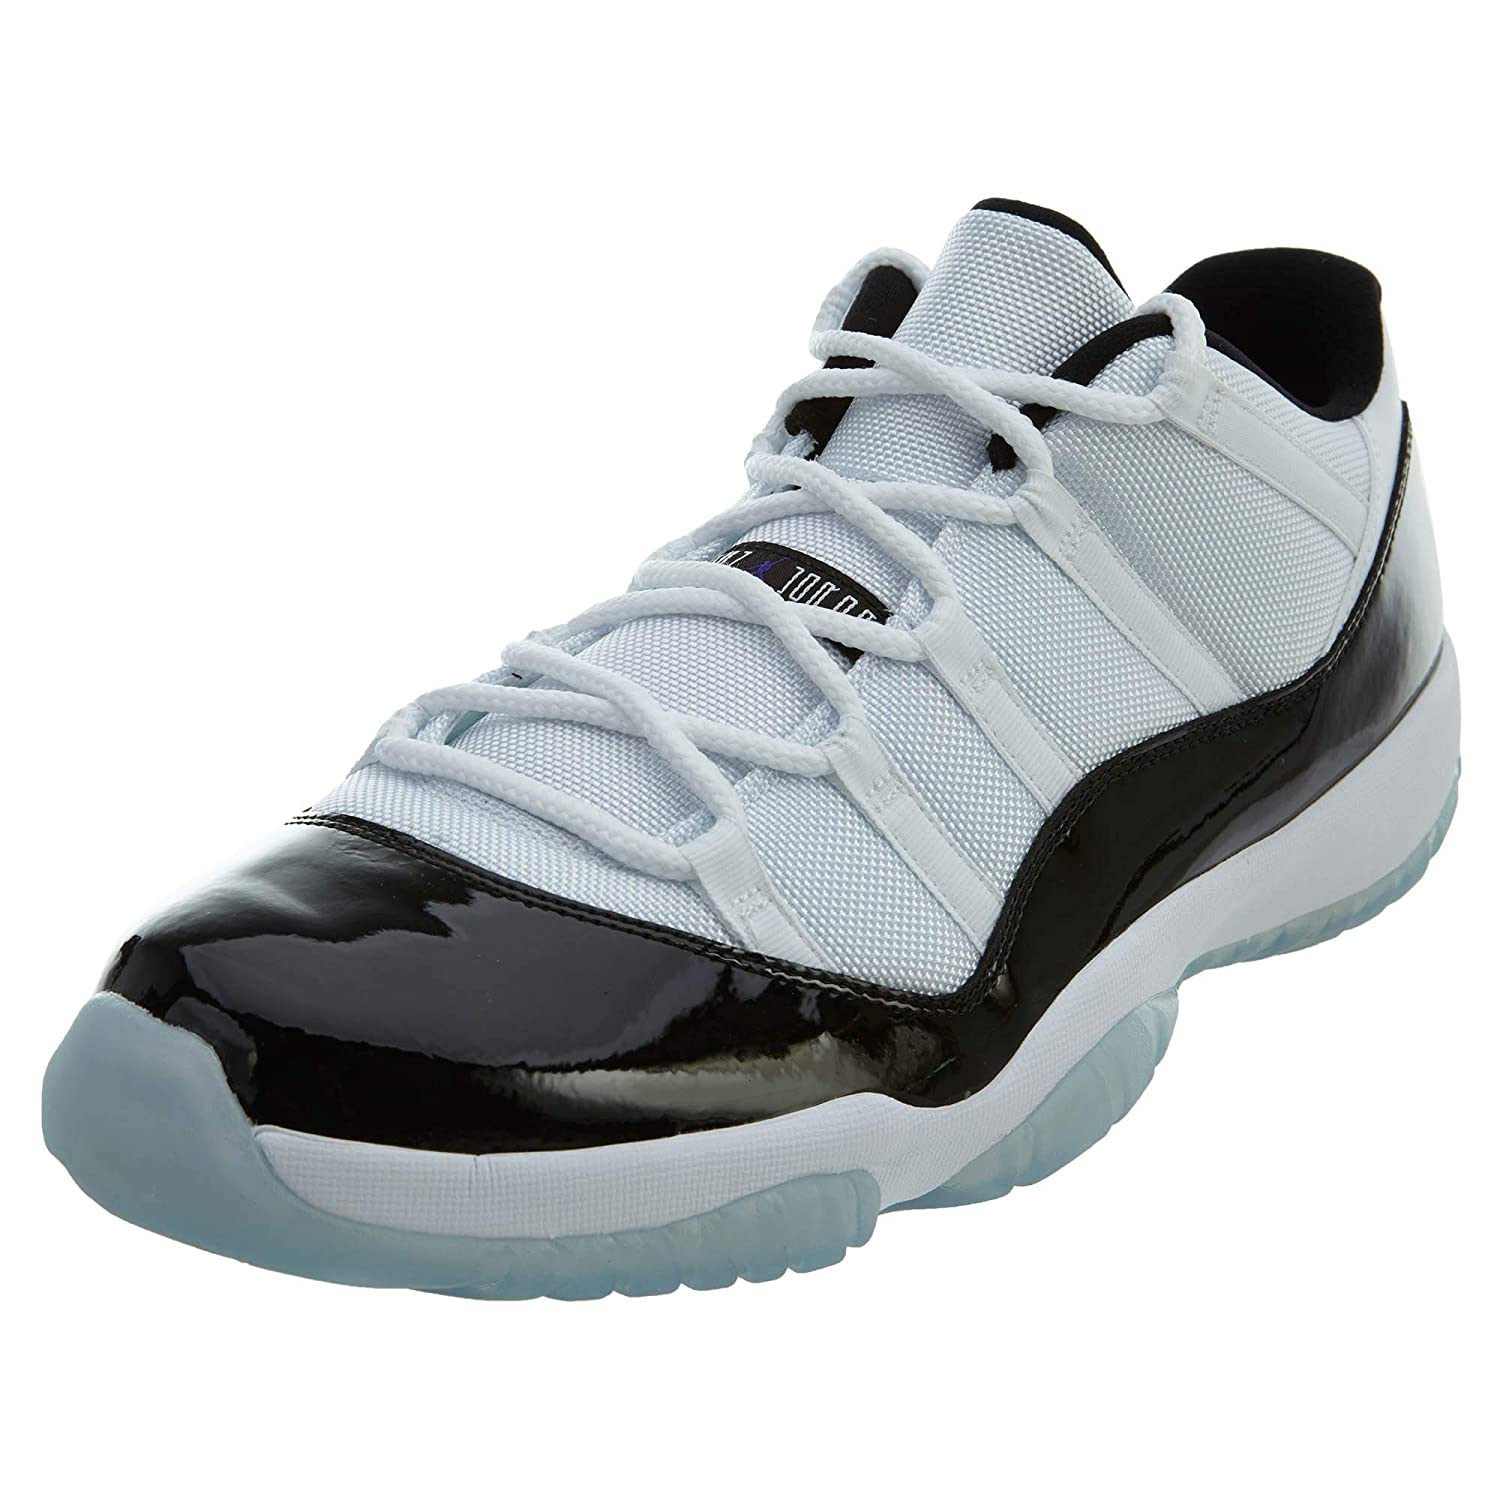 White   Black-Dark Concord Jordan Air Jordan 11 Retro Low Big Kids